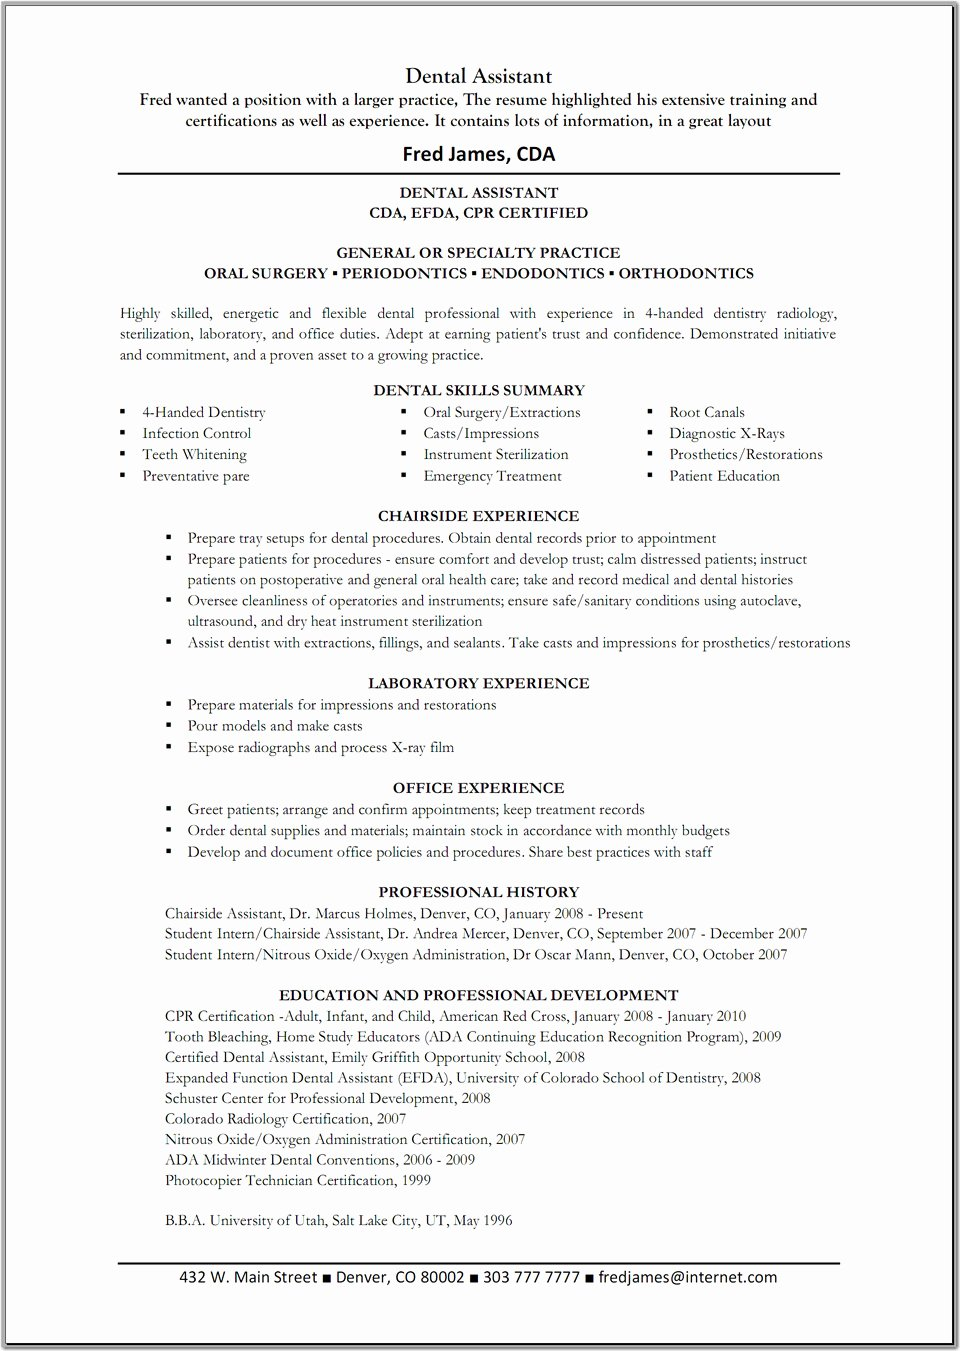 Free Download Dental assistant Resume Template Dental